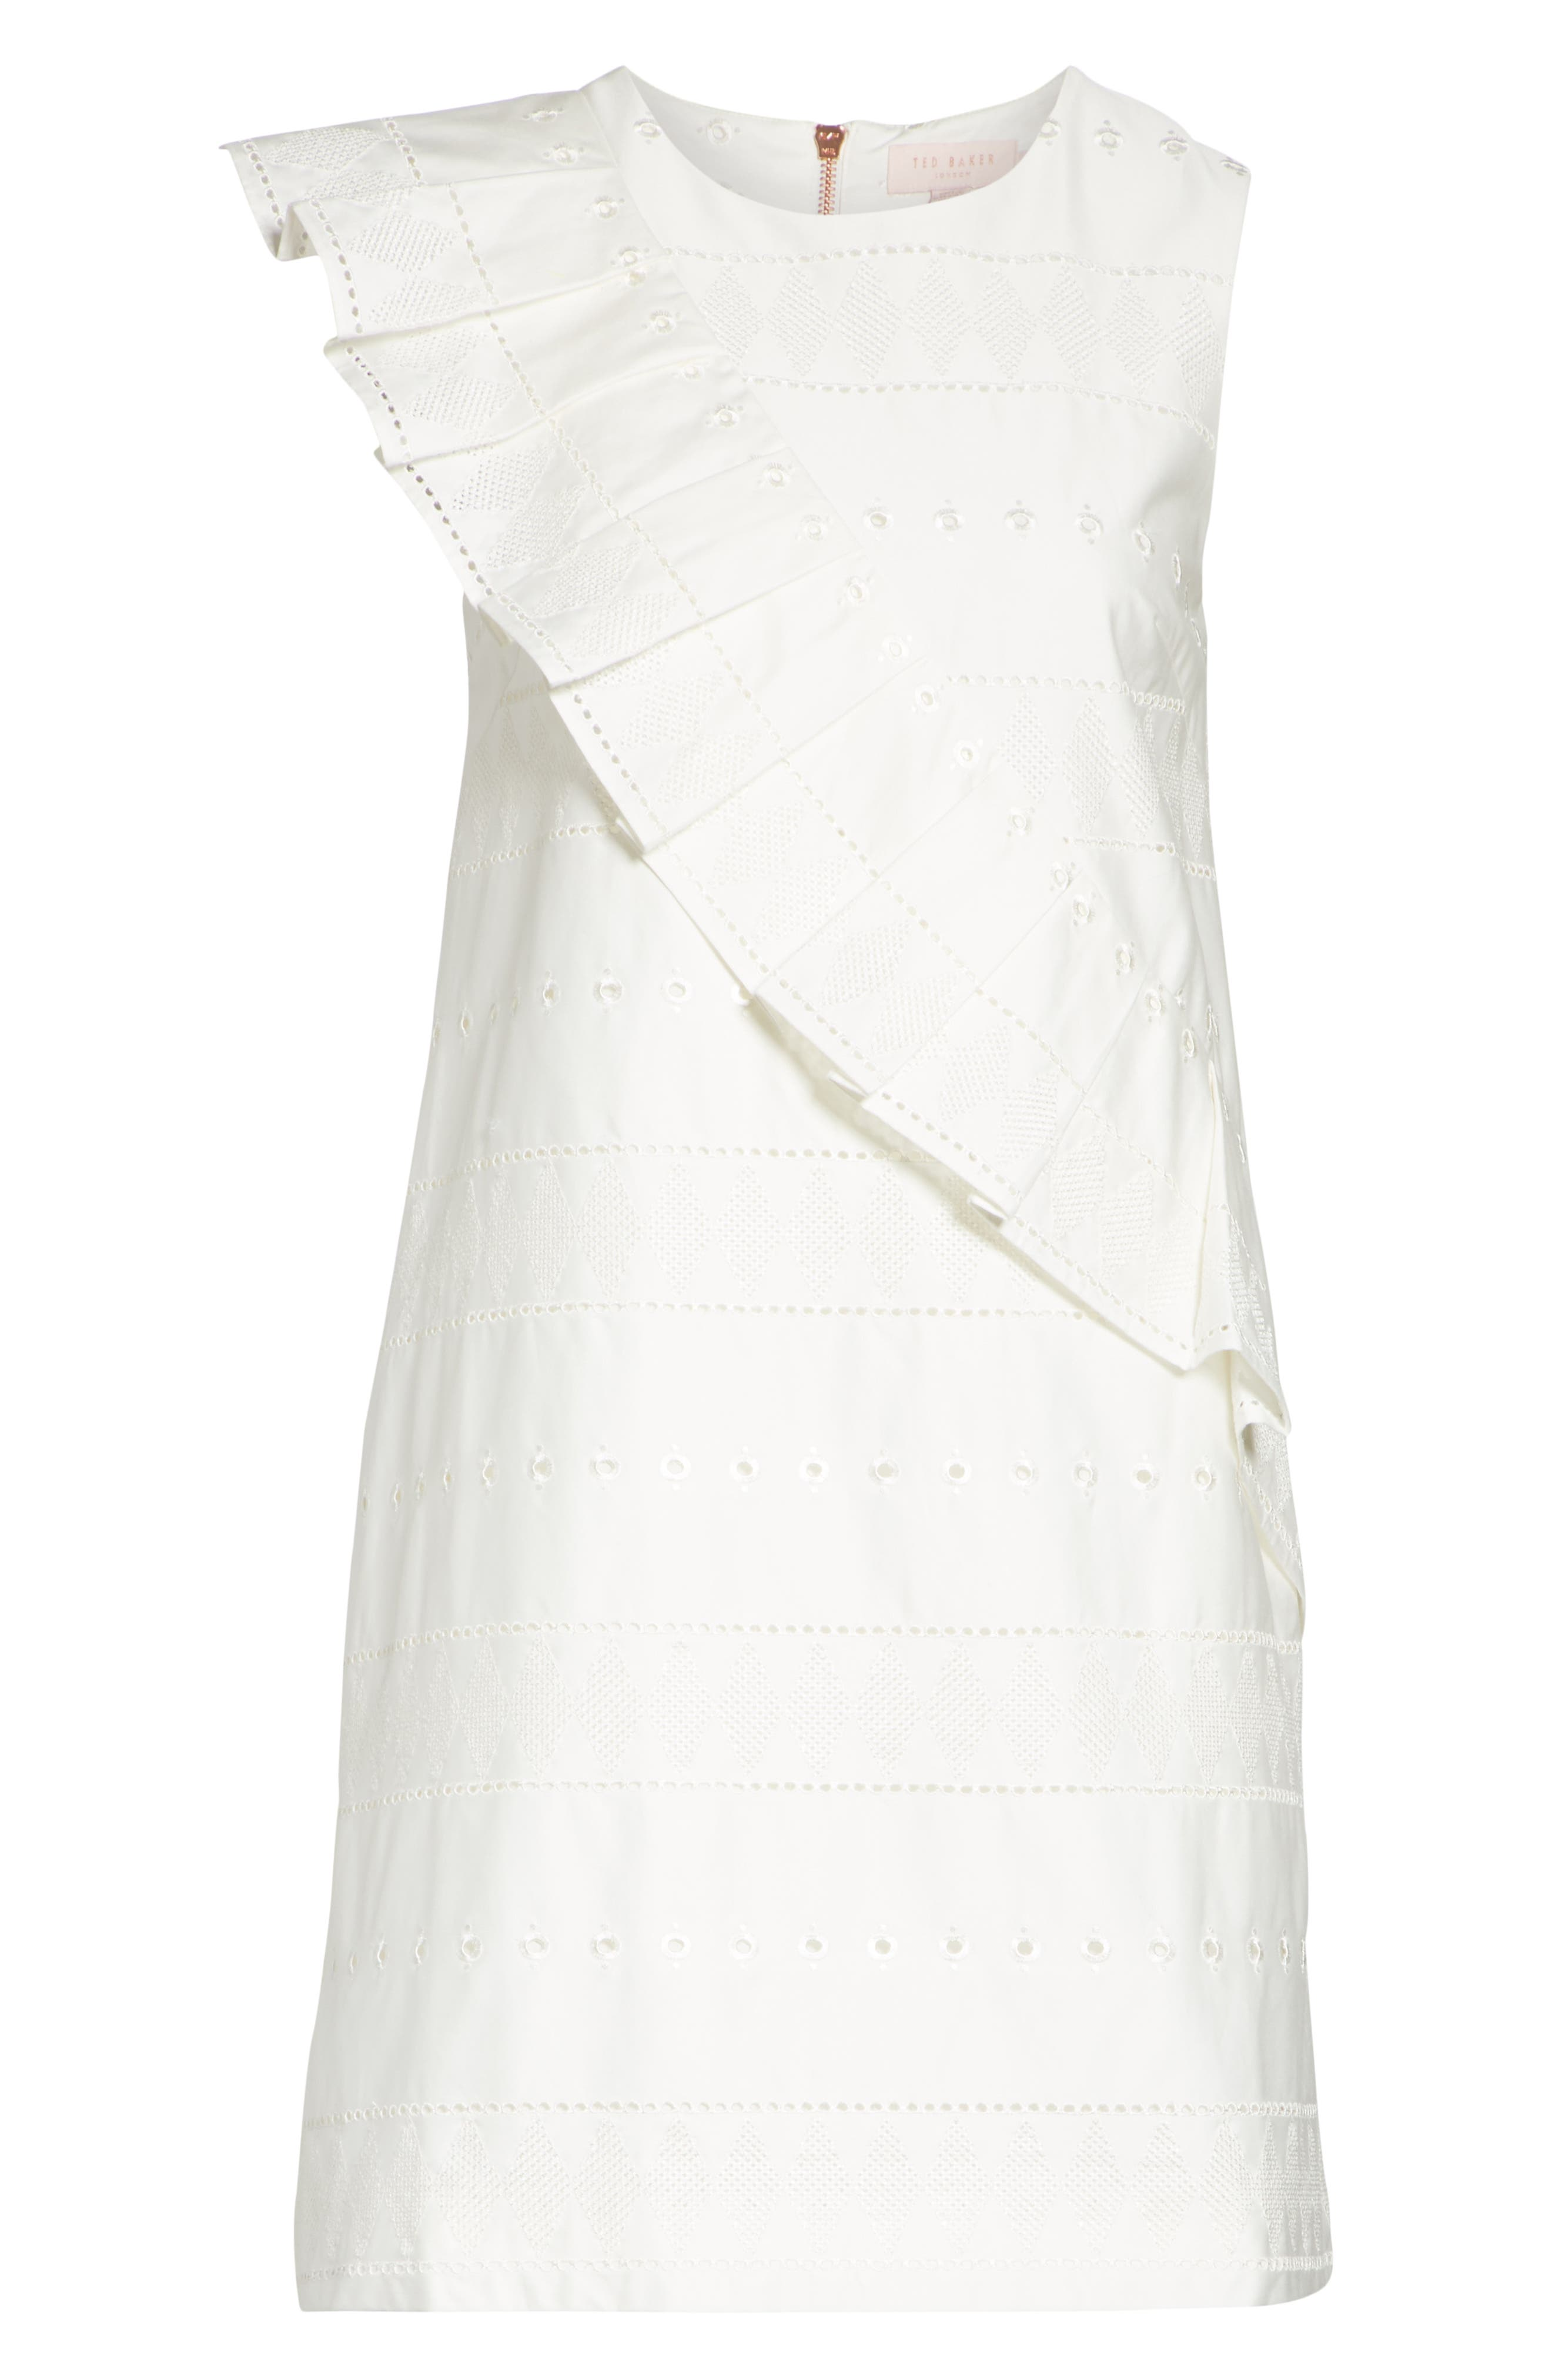 Embroidered Ruffle Stretch Cotton Shift Dress,                             Alternate thumbnail 6, color,                             110